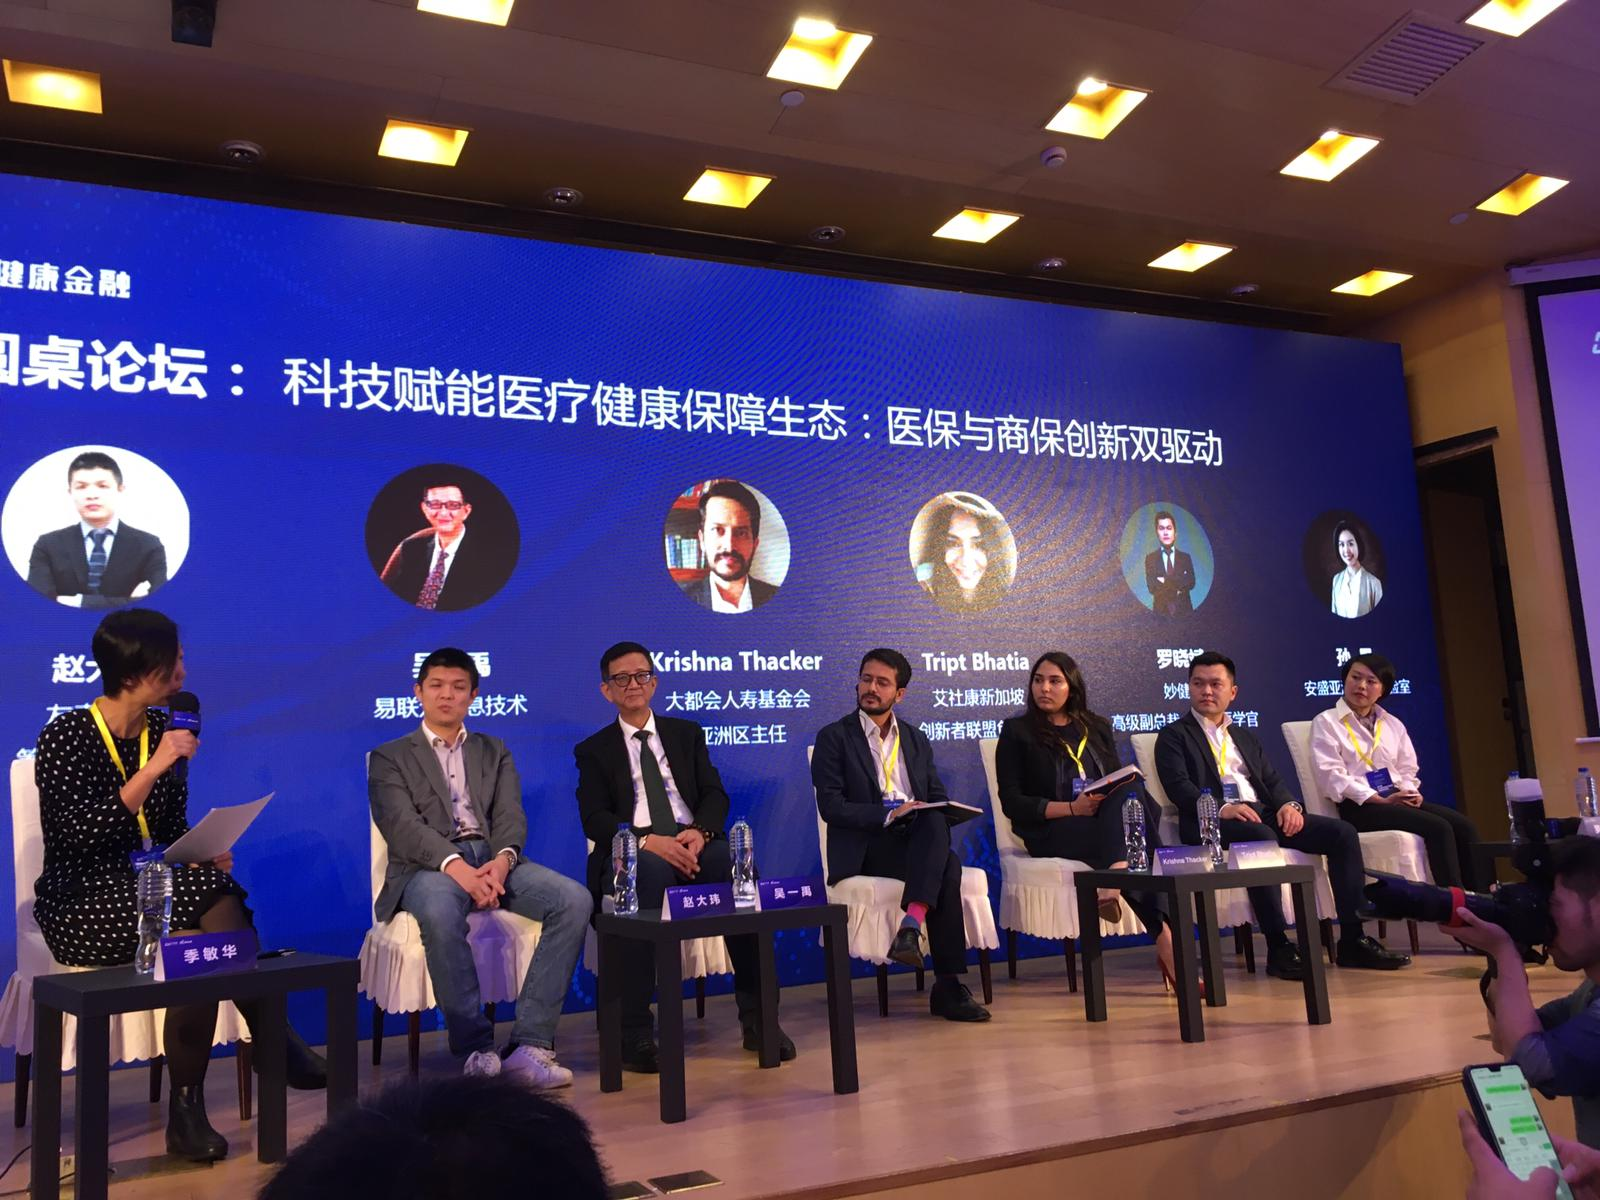 The 3rd Annual China International Healthcare and Finance Innovation Forum, Shanghai